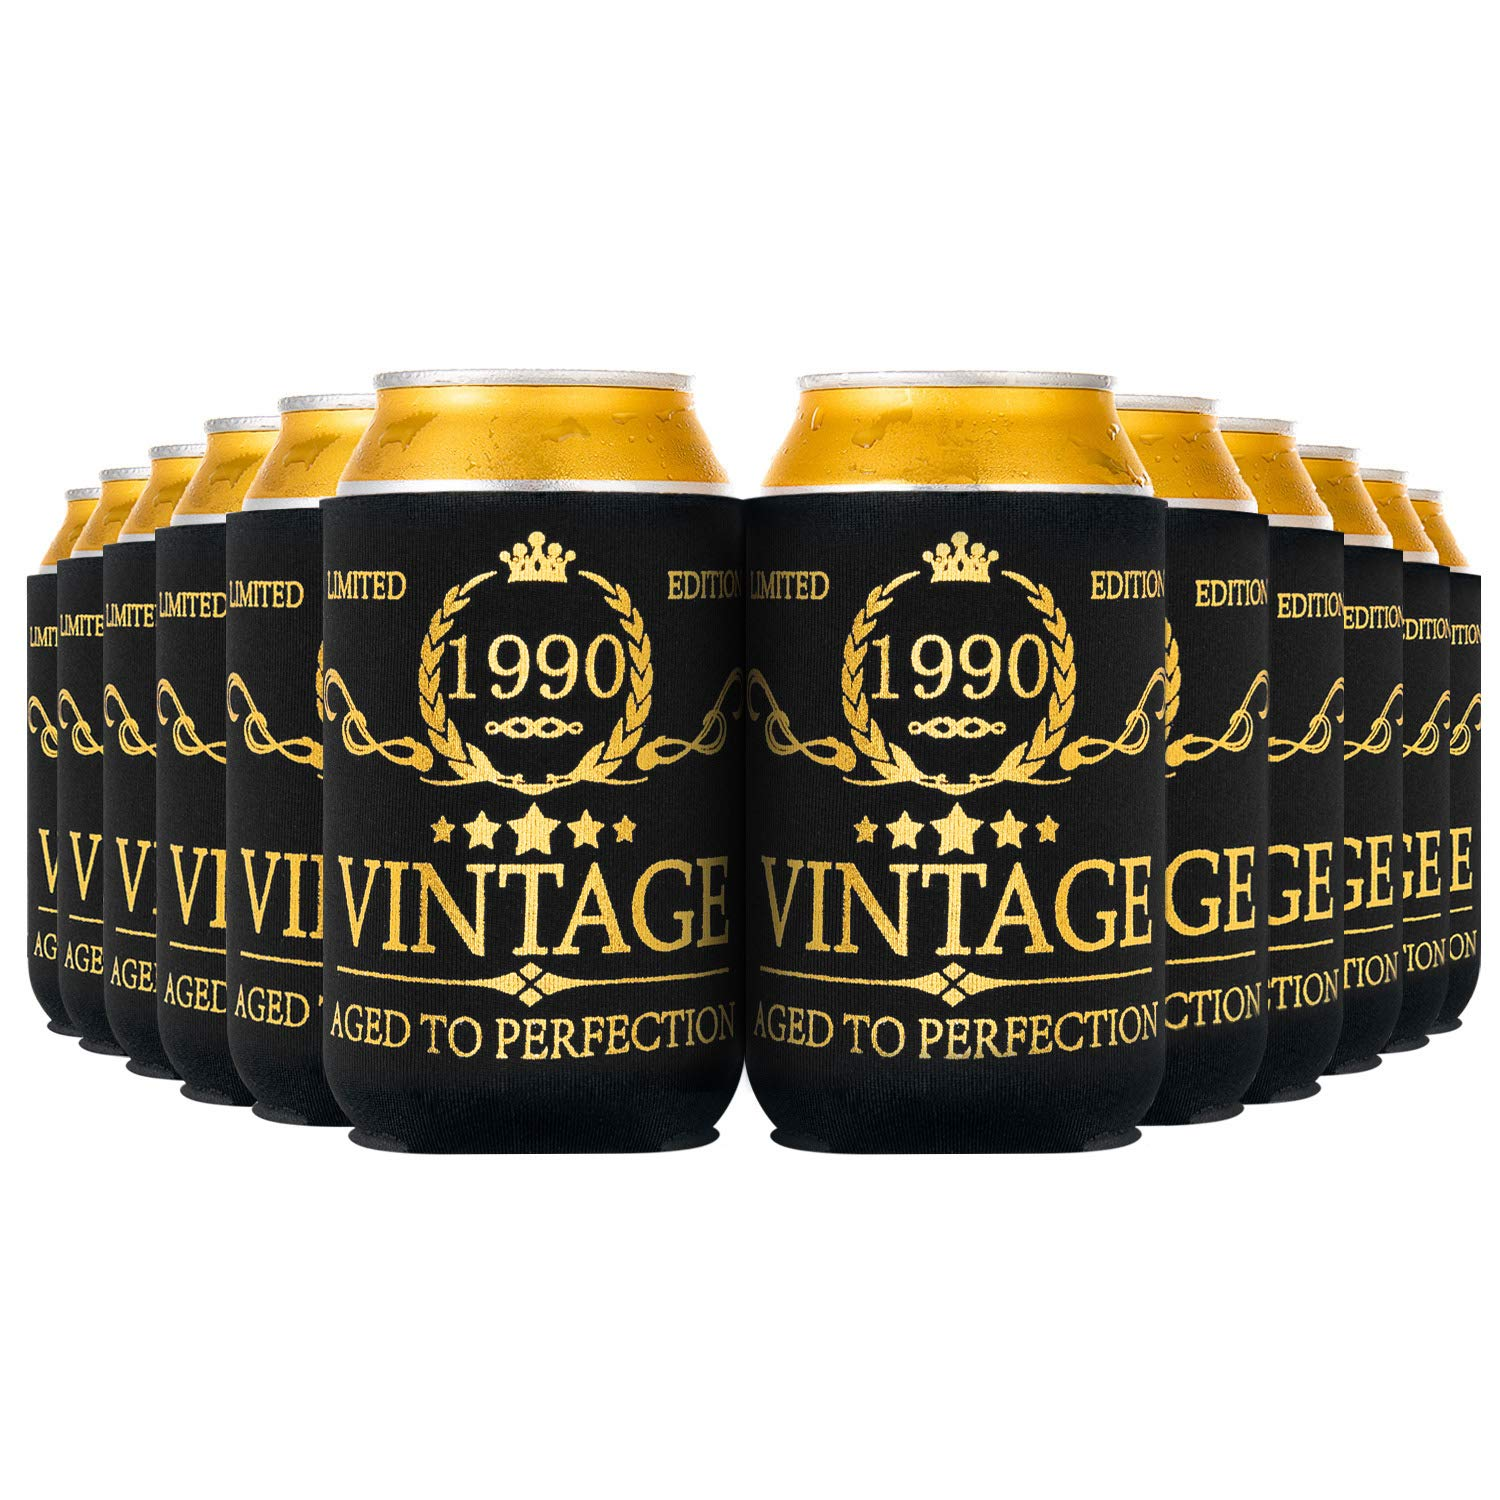 Crisky Vintage 1990 Can Coolers 30th Birthday Beer Sleeve Party Favor 30th Birthday Decoarions Black and Gold, Can Insulated Covers Neoprene Coolers for Soda, Beer, Beverage